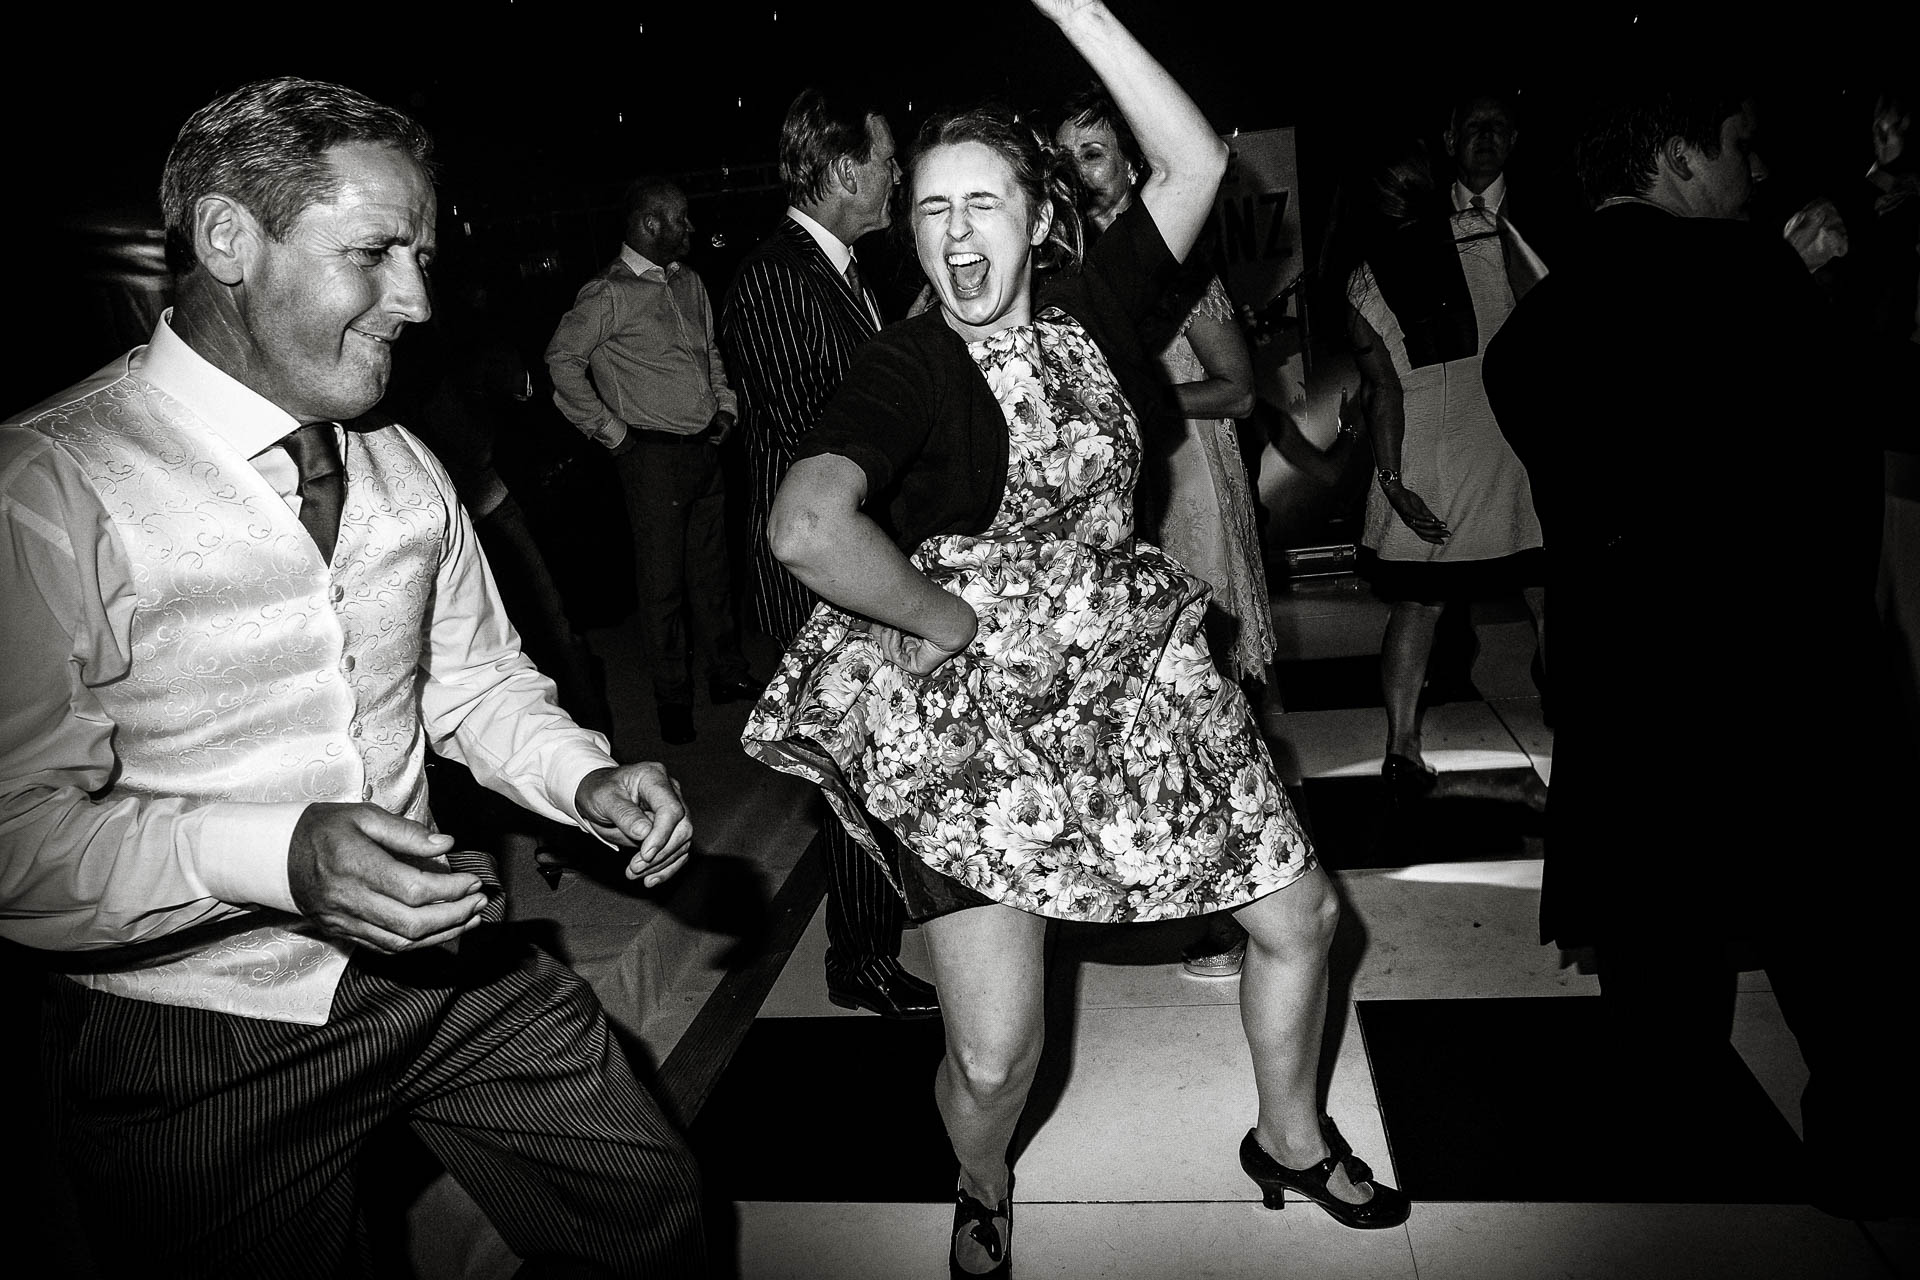 documentary-photography-areception-dance-party